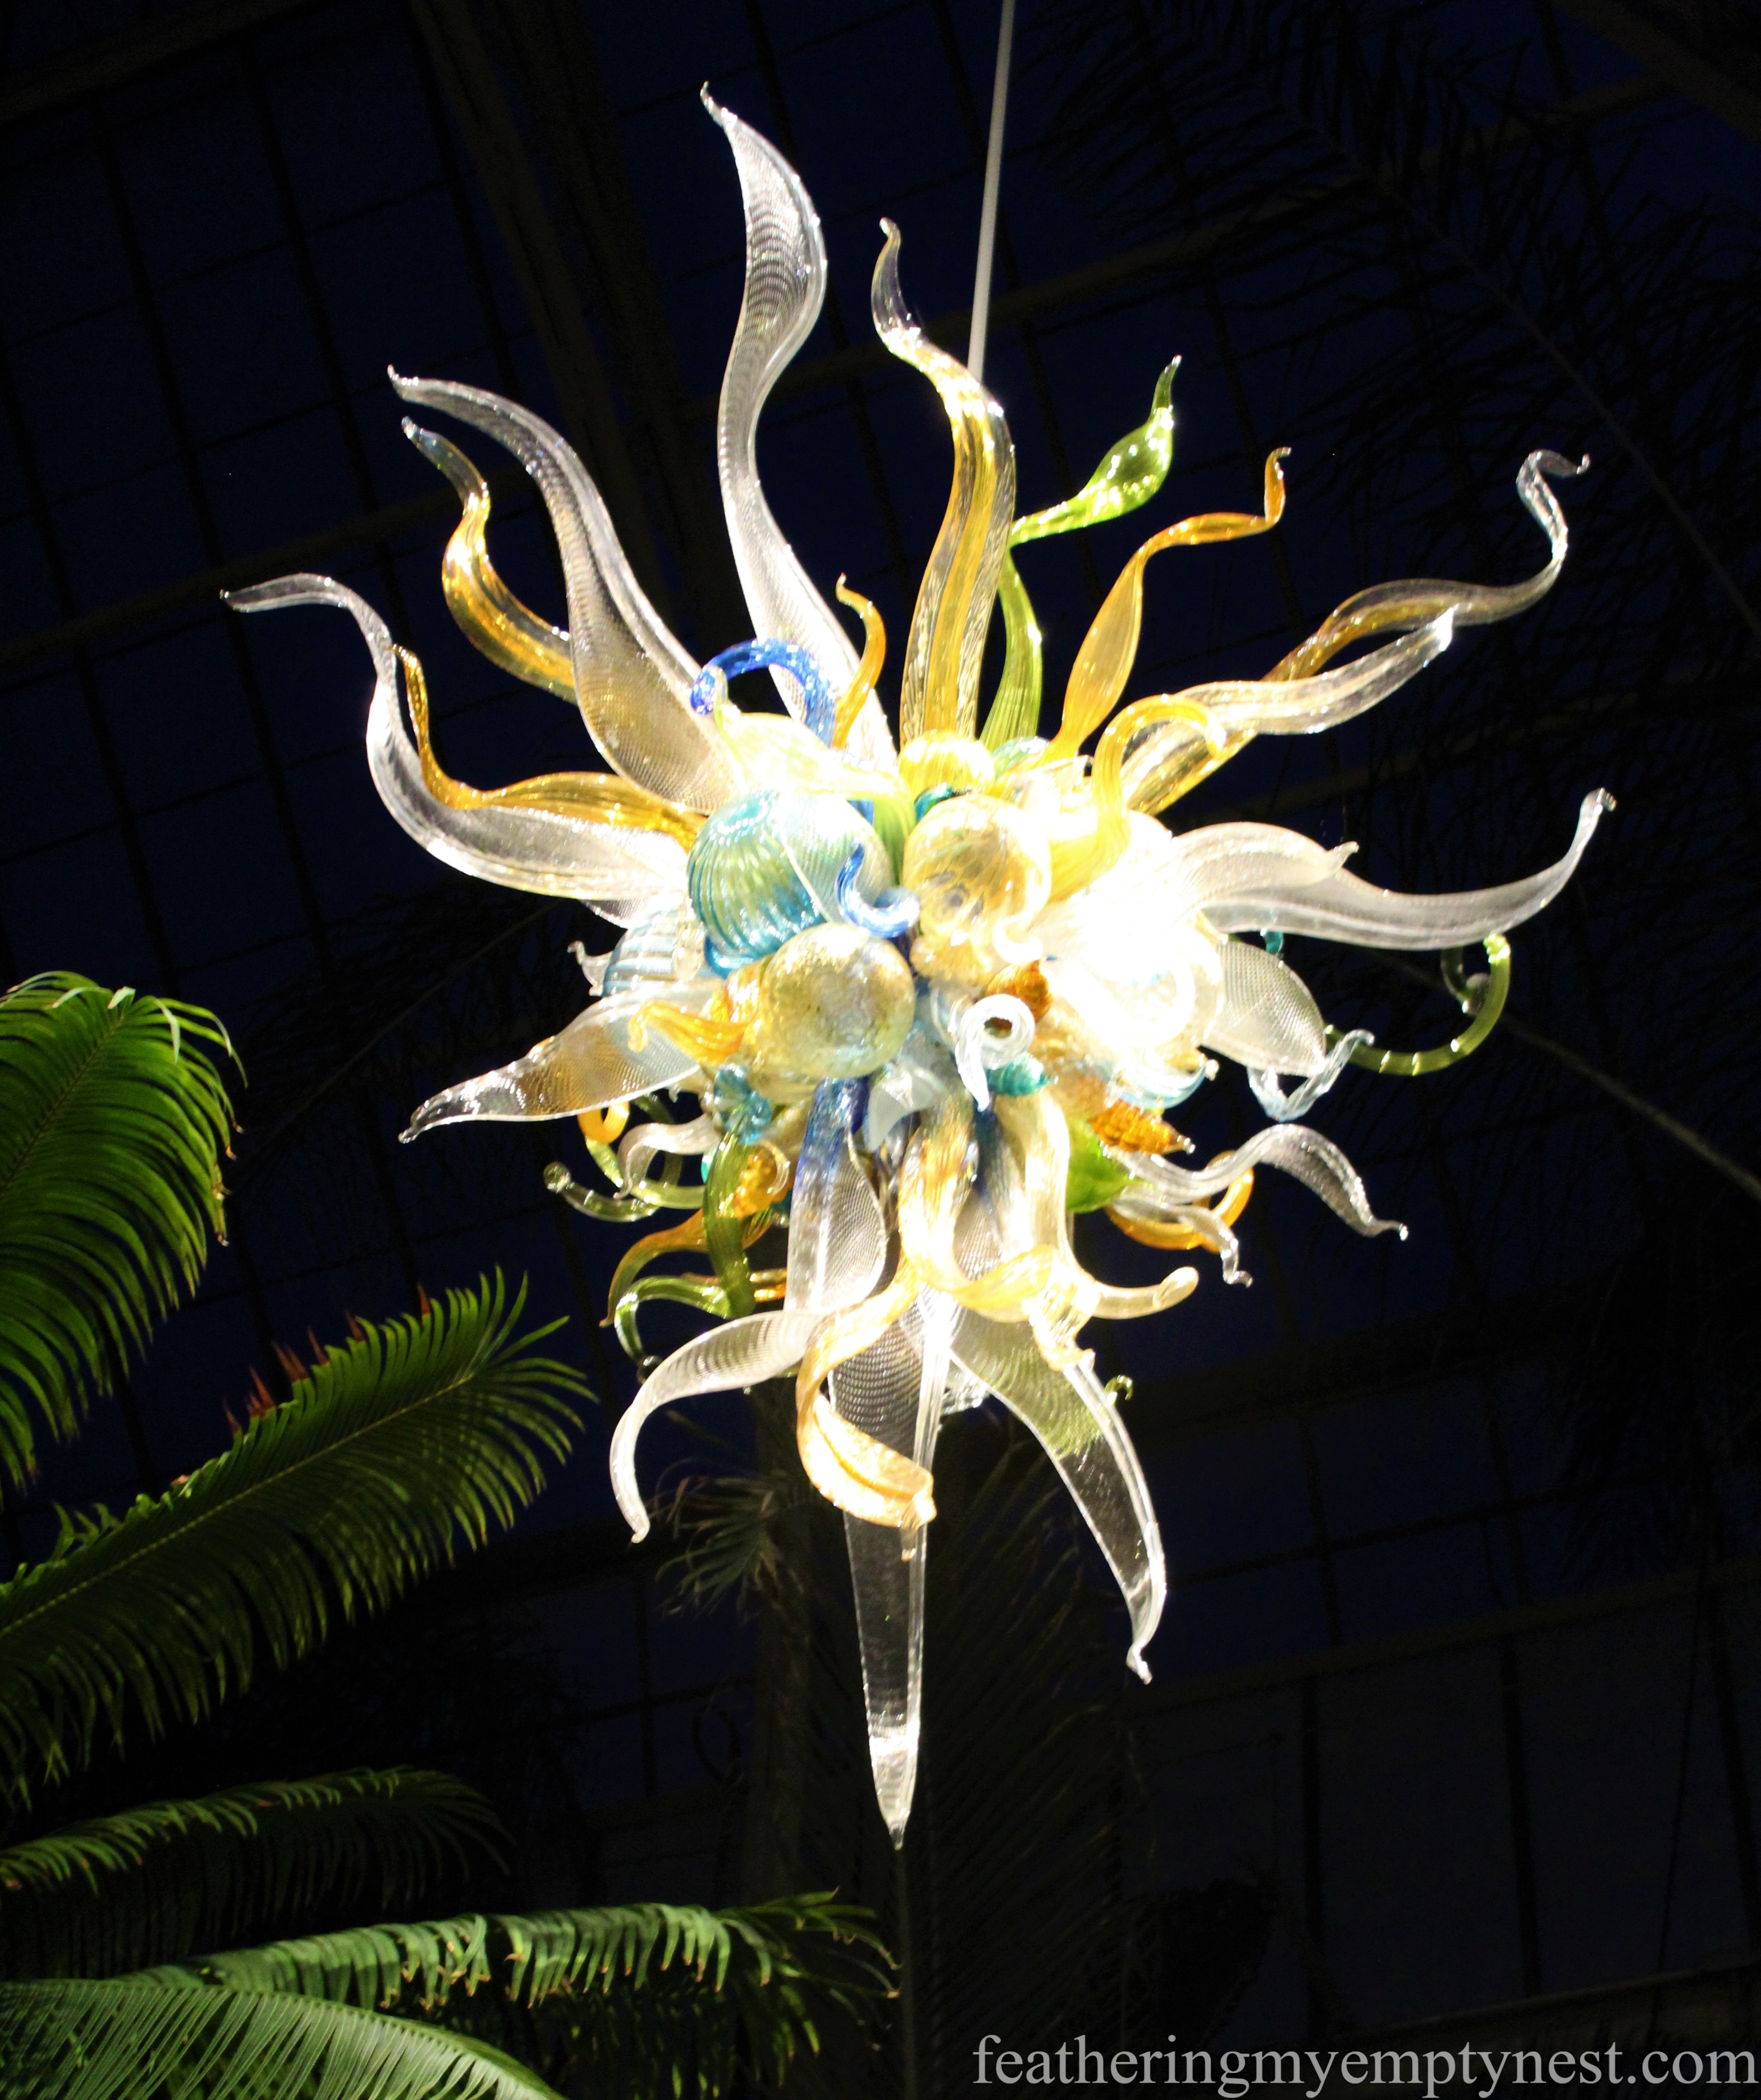 Chihuly chandelier in the Conservatory at Biltmore --Chihuly At Night At The Biltmore